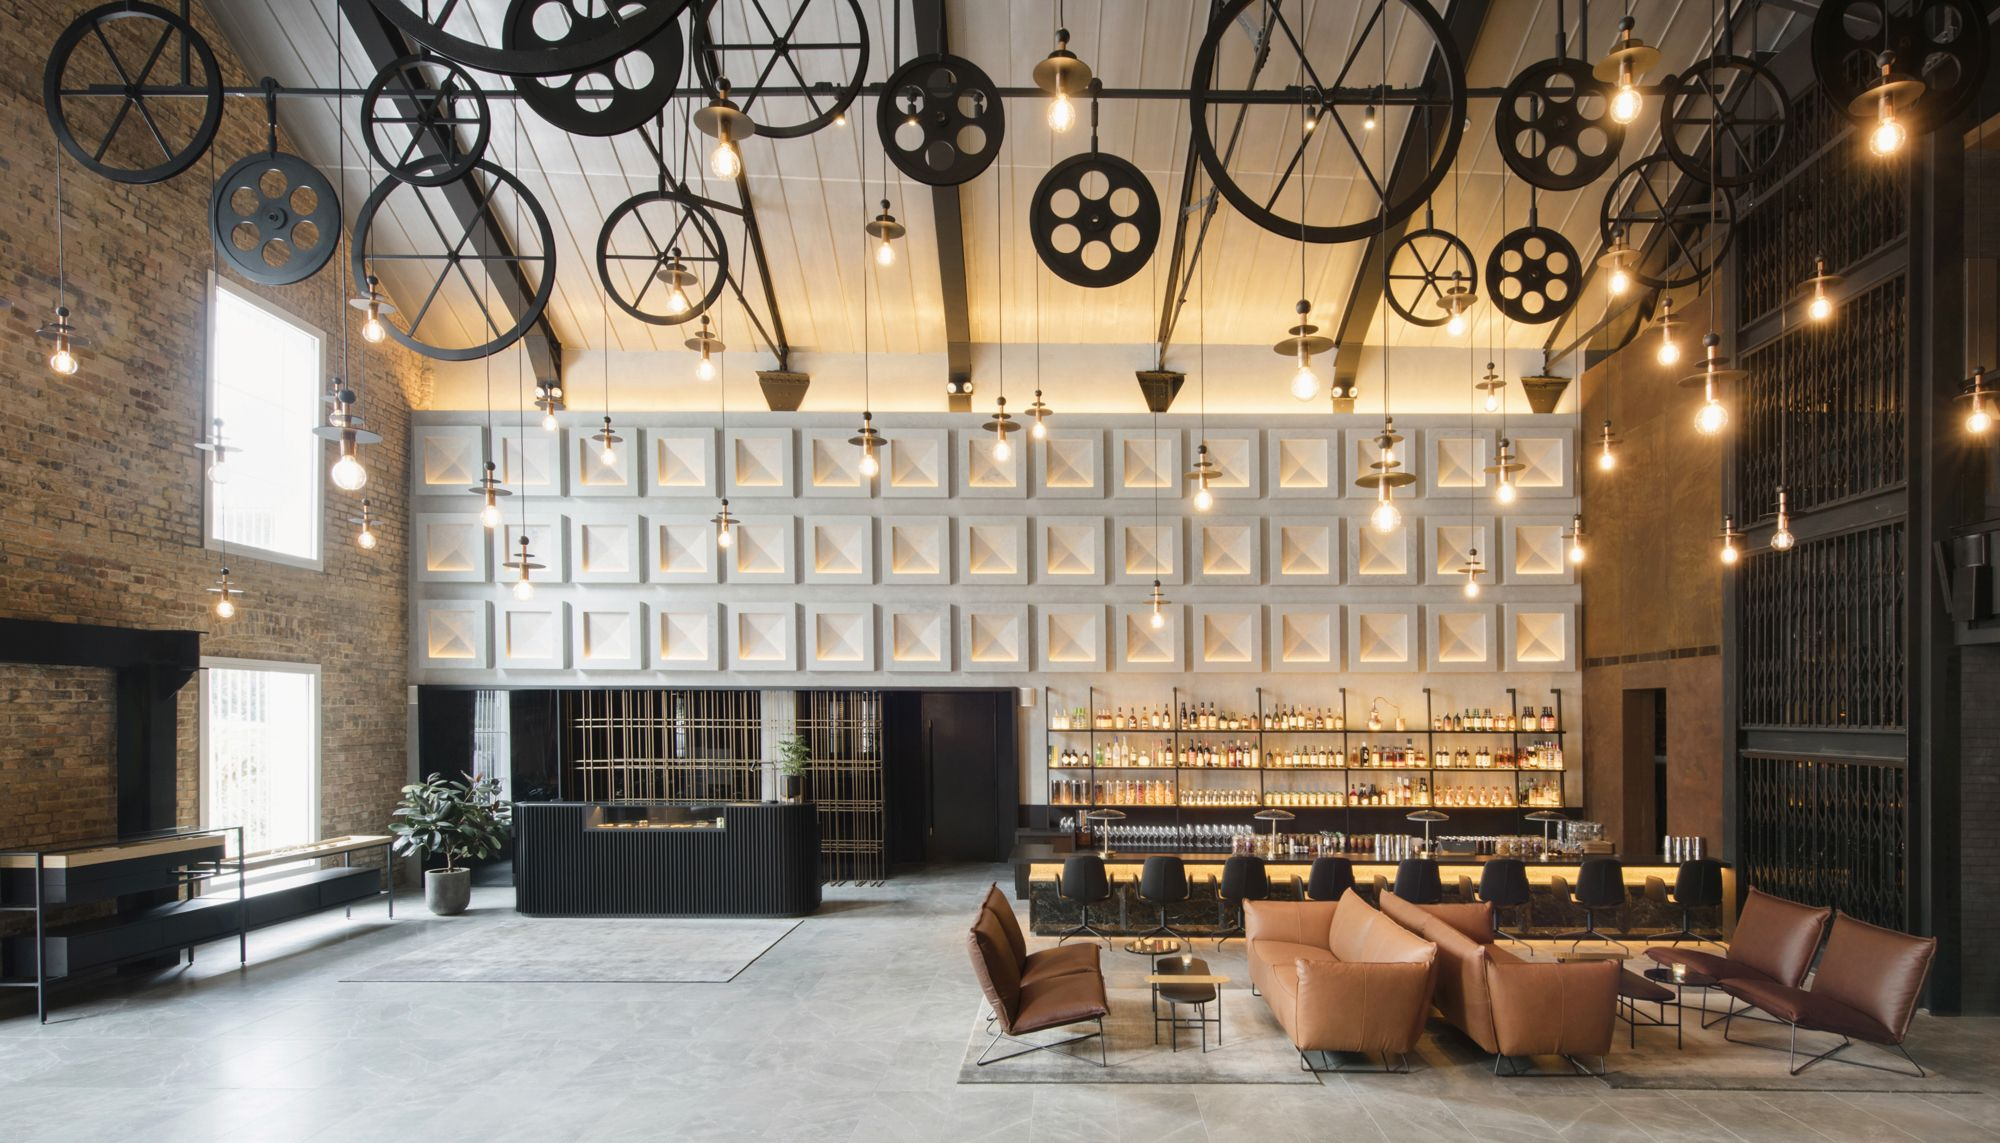 Industrial Chic Mood At The Warehouse Hotel [Singapore]